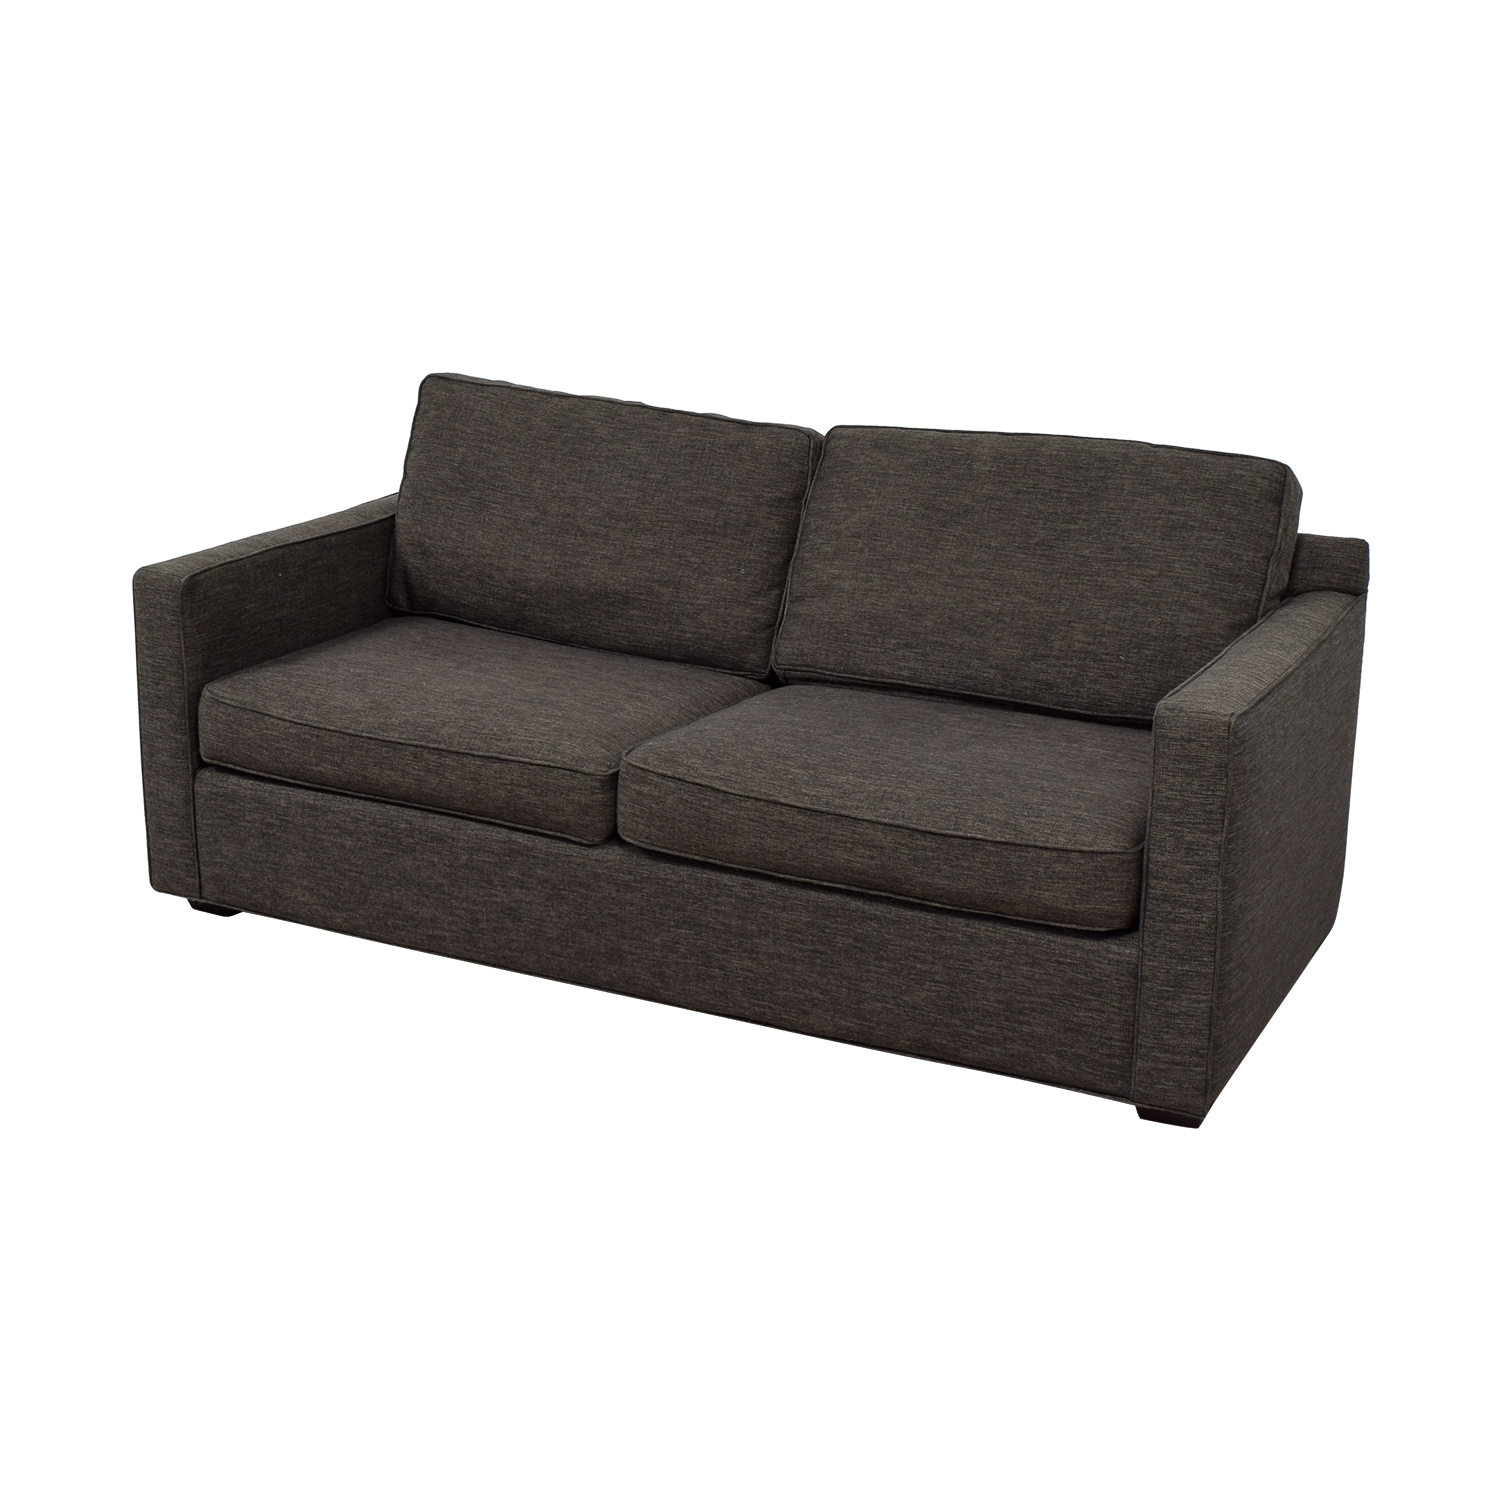 crate and barrel lounge sofa pilling best beds for small rooms 63 off davis grey two